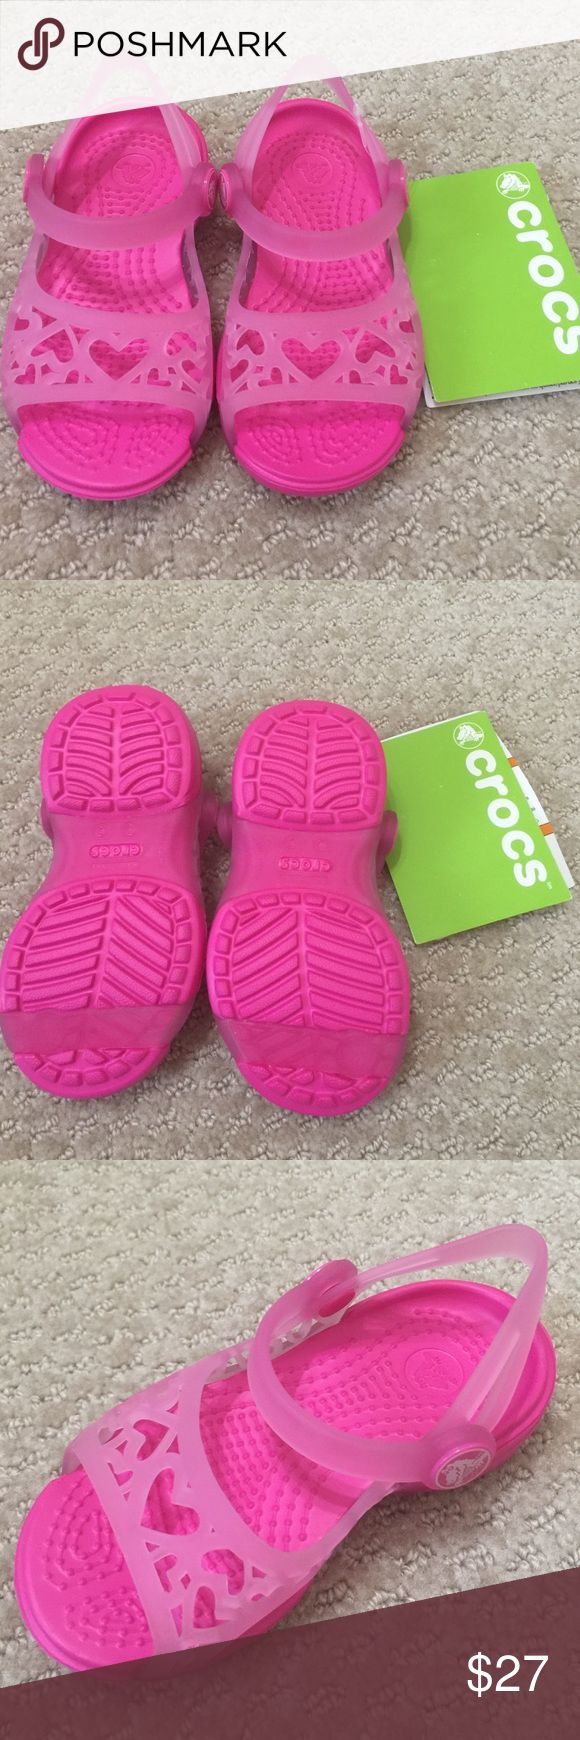 Super Cute CROCS Sandals for Toddler Brand new, hard to find CROCS sandals. Toddler size. Cutout heart detail. Super cute!! Your little baby girl will look adorable in them!! *no holds, no trades, no modeling* CROCS Shoes